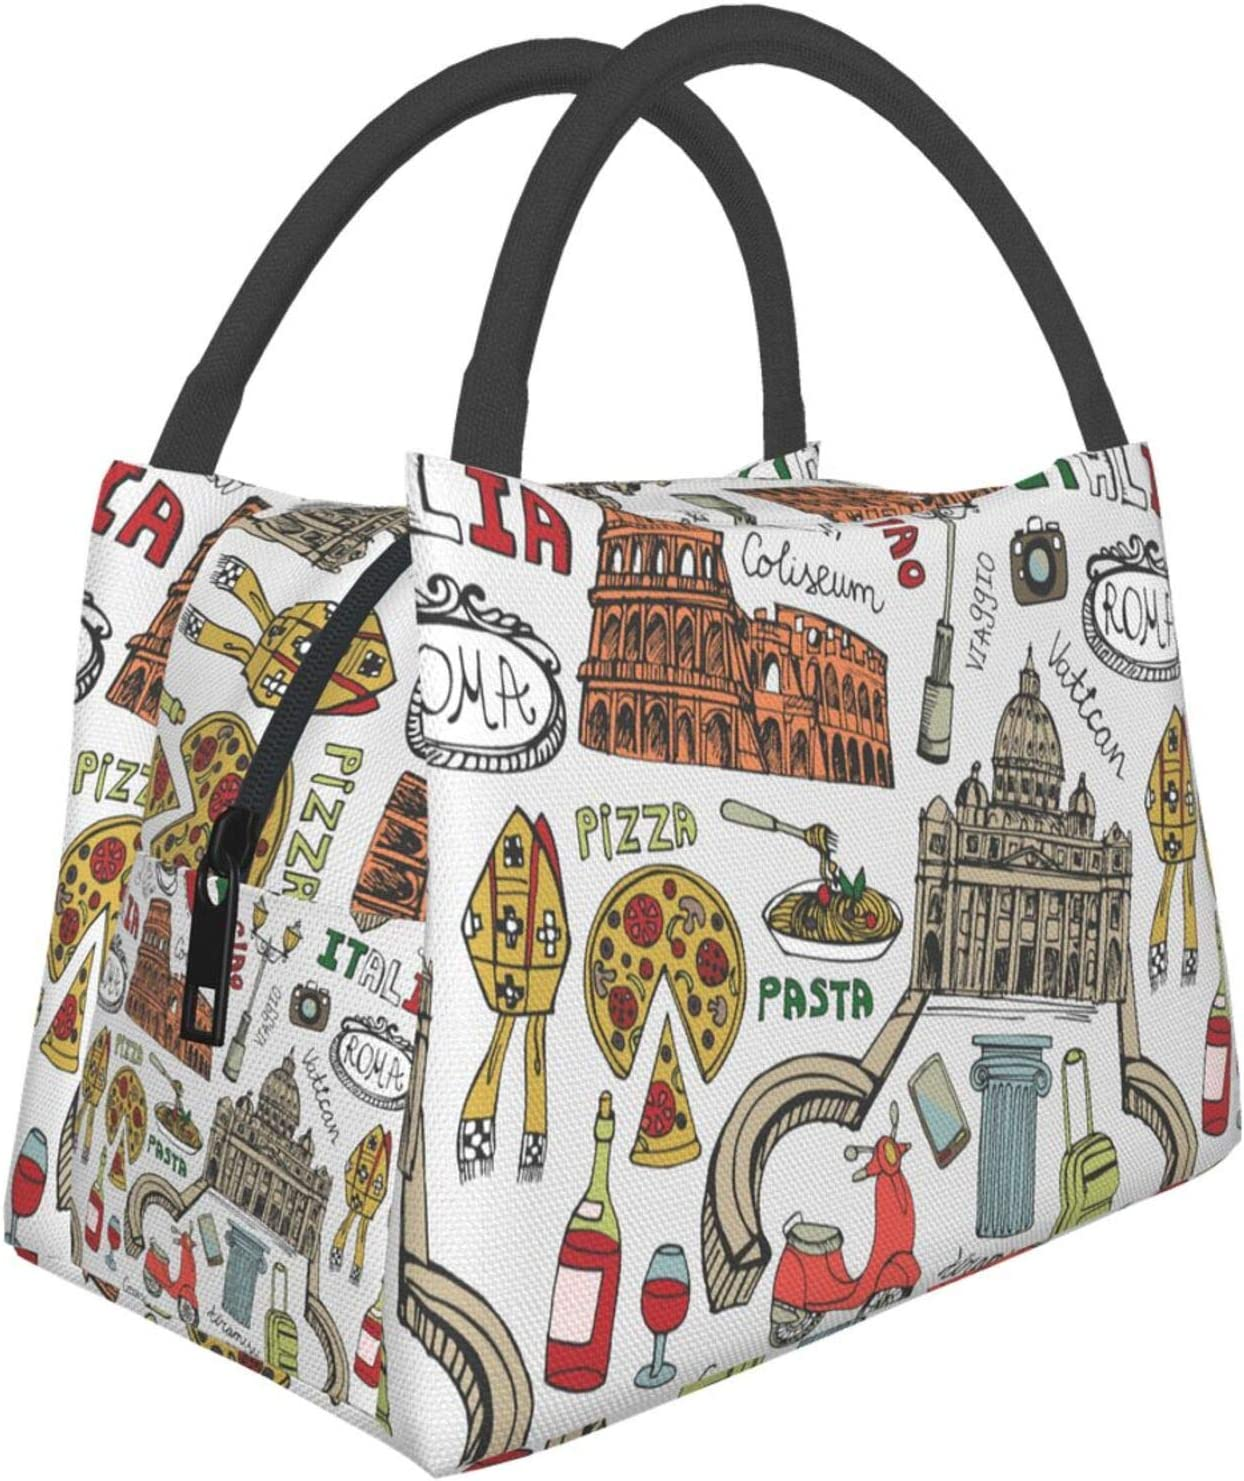 Italian Rome Art Portable Leak-Proof Lunch Bag, Waterproof Large-Capacity Lunch Handbag,Cartoon Food And Building Pattern Insulated Heat Insulation Insulation Bag